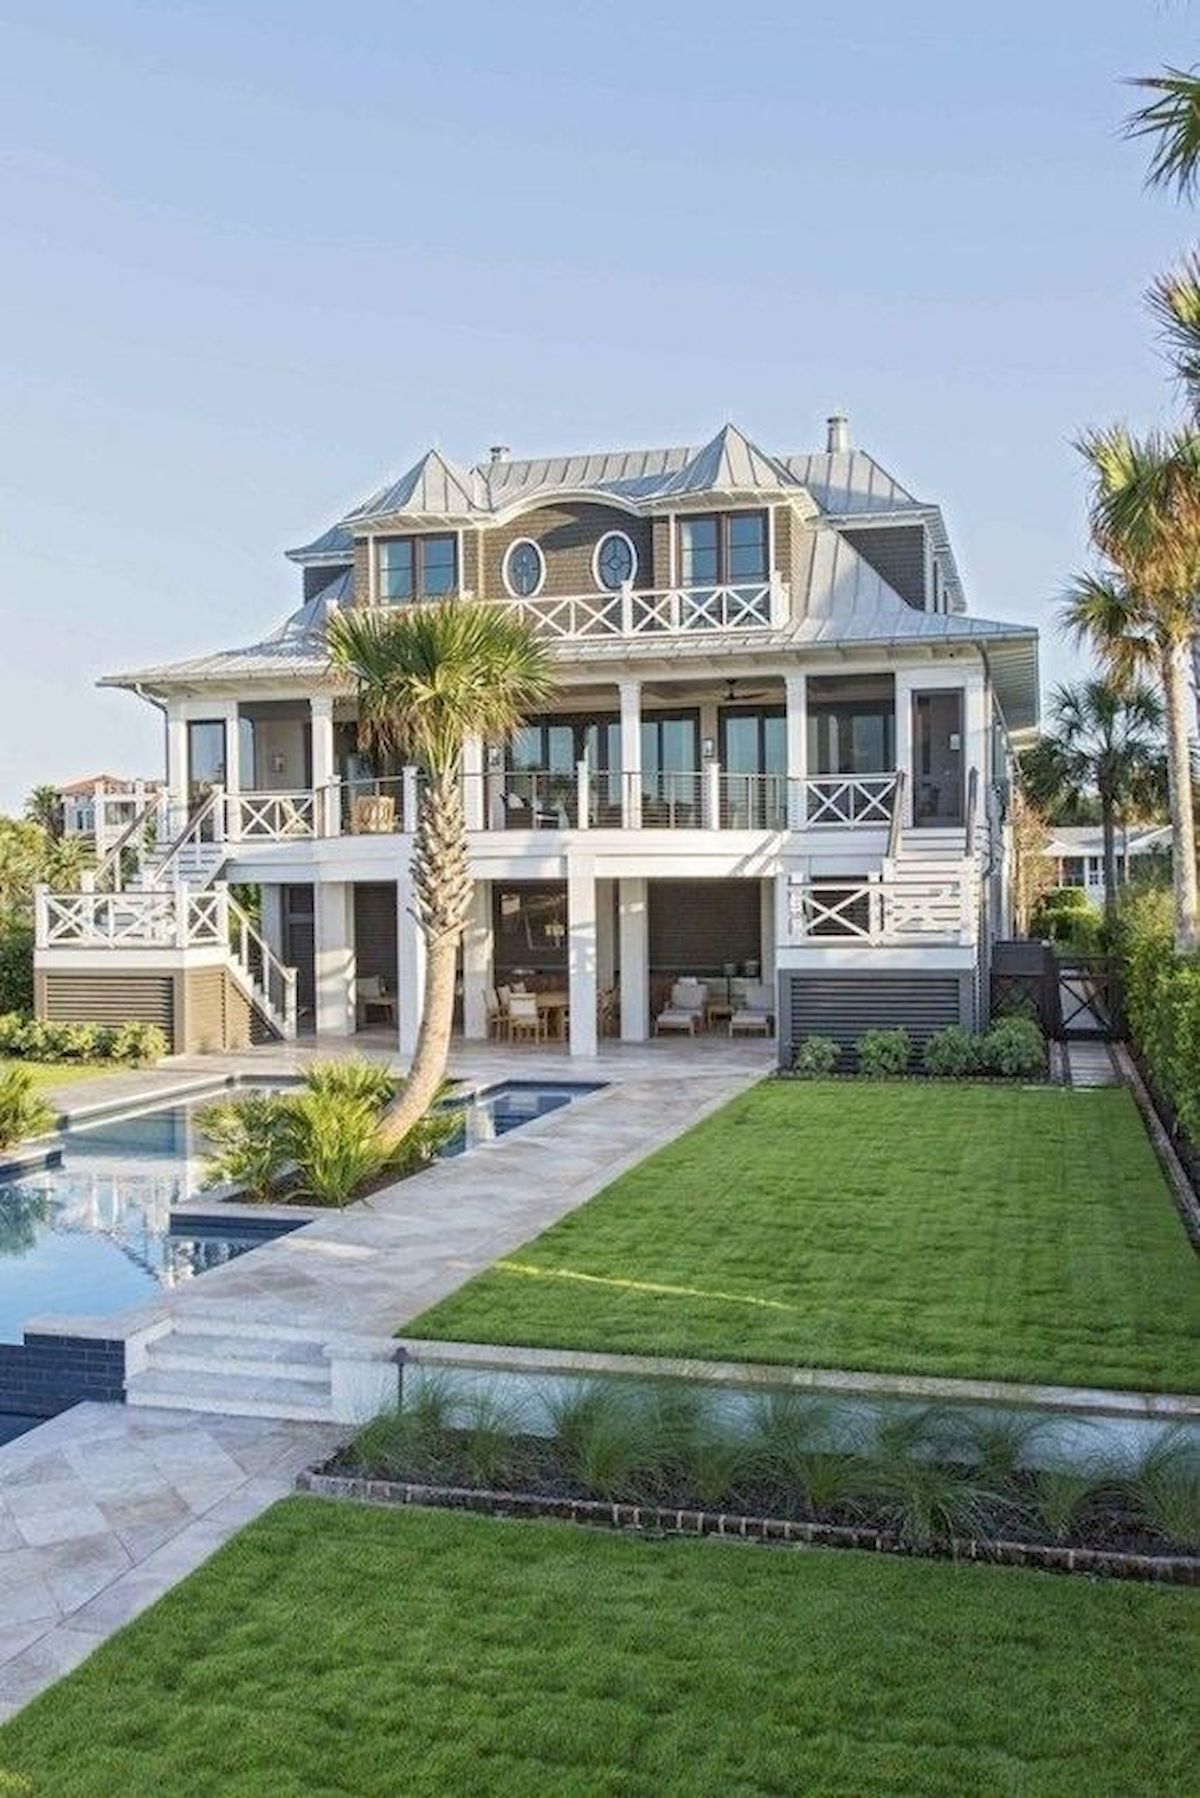 Dream Home Lake House Dream Home Lake House Design Ideas Lake Dream Dreaming Houses Awesome Dreamhousee In 2020 Lake House Enchanted Home My Dream Home